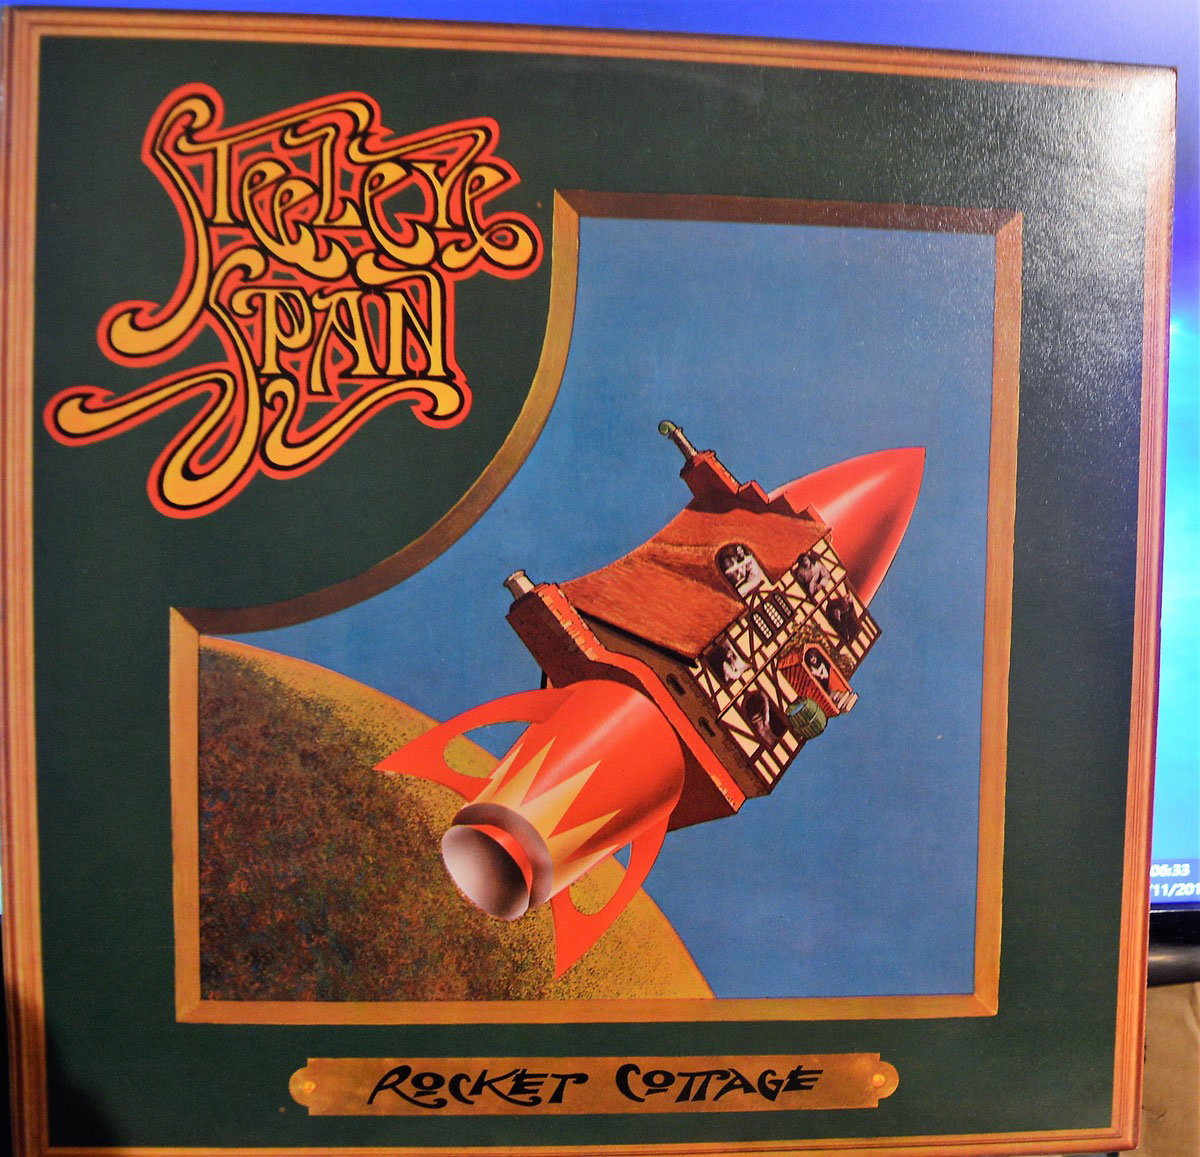 Steeleye Span Rocket Cottage Records Lps Vinyl And Cds